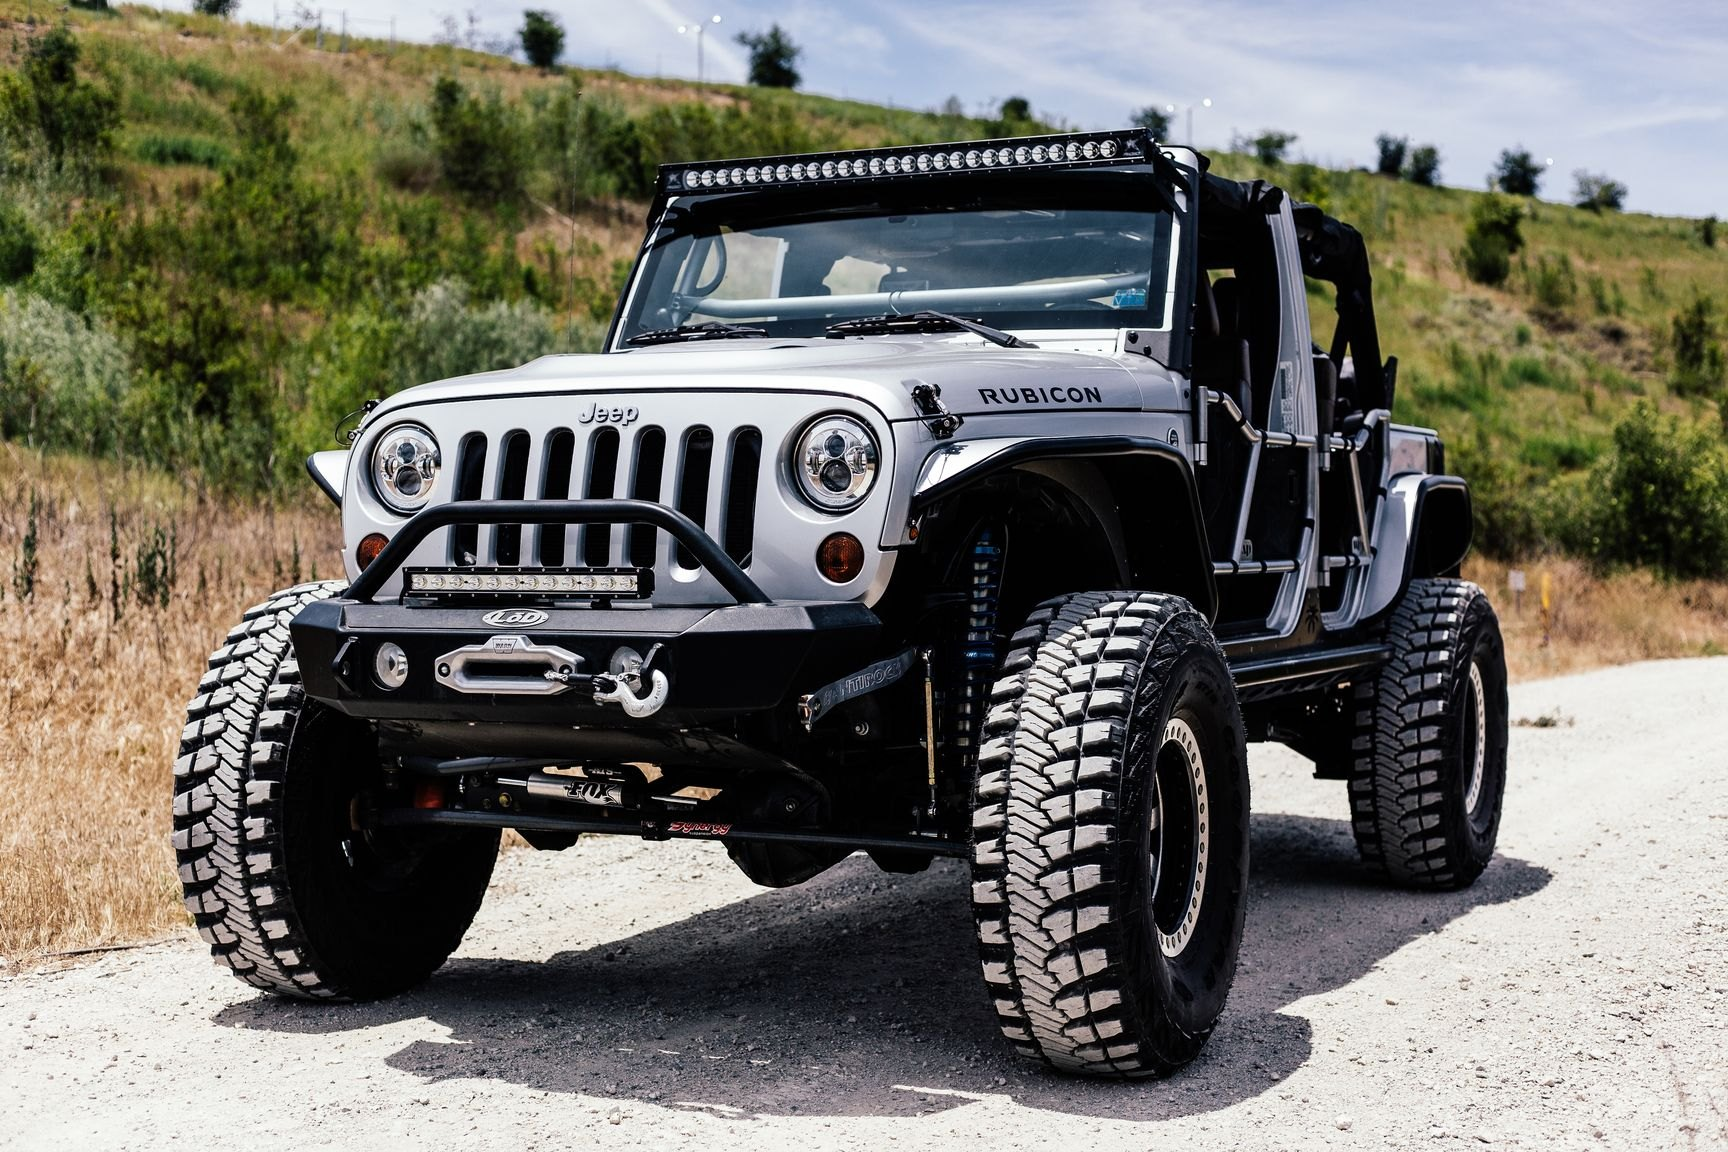 silver bullet: lifted jeep wrangler on fox suspension shocks — carid